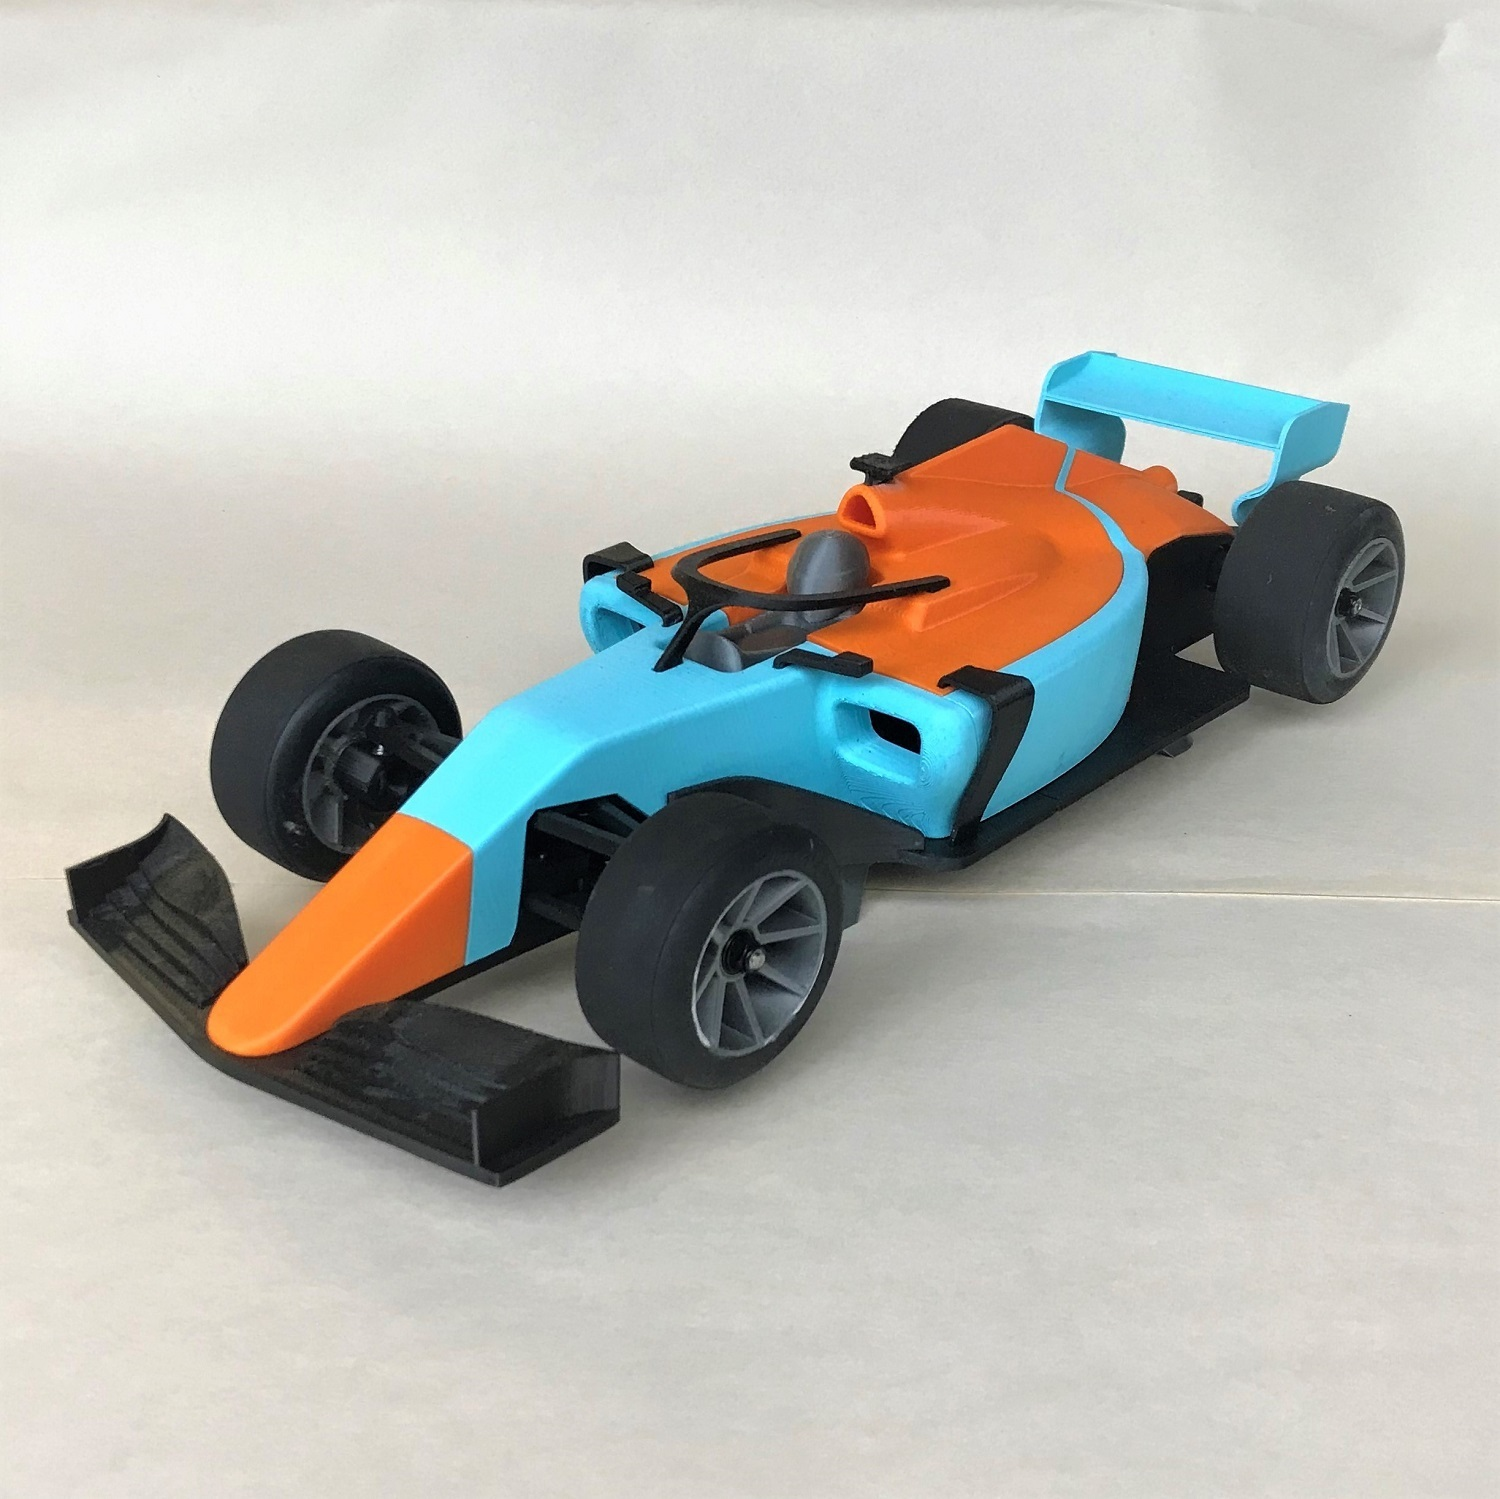 F1_MKII_4 - Copy.JPG Download free 3MF file Open RC F1 MKII • Model to 3D print, marklandsaat